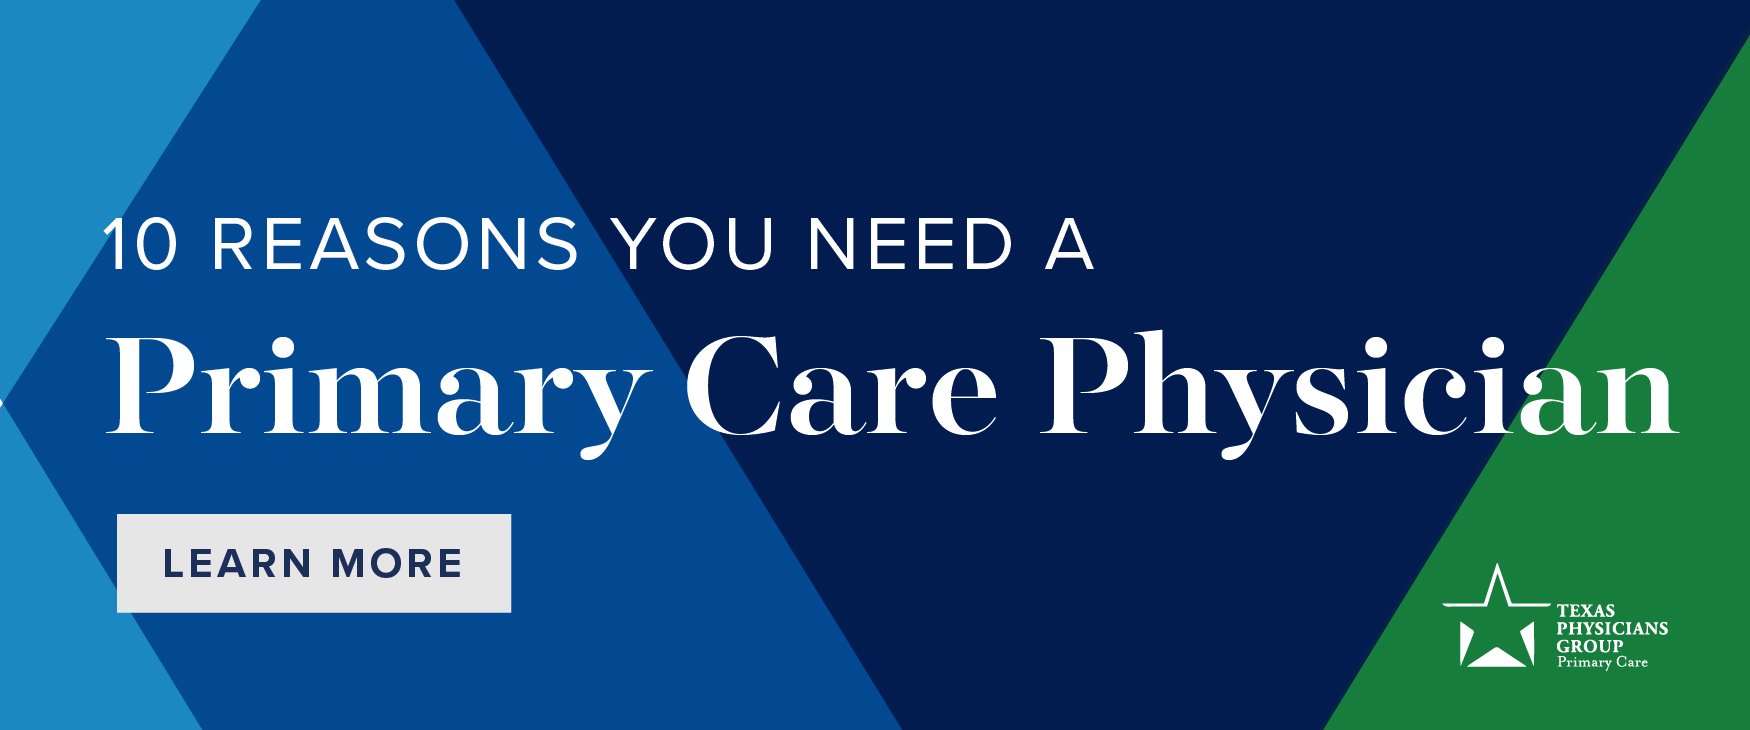 10 Reasons You Need A Primary Care Physician